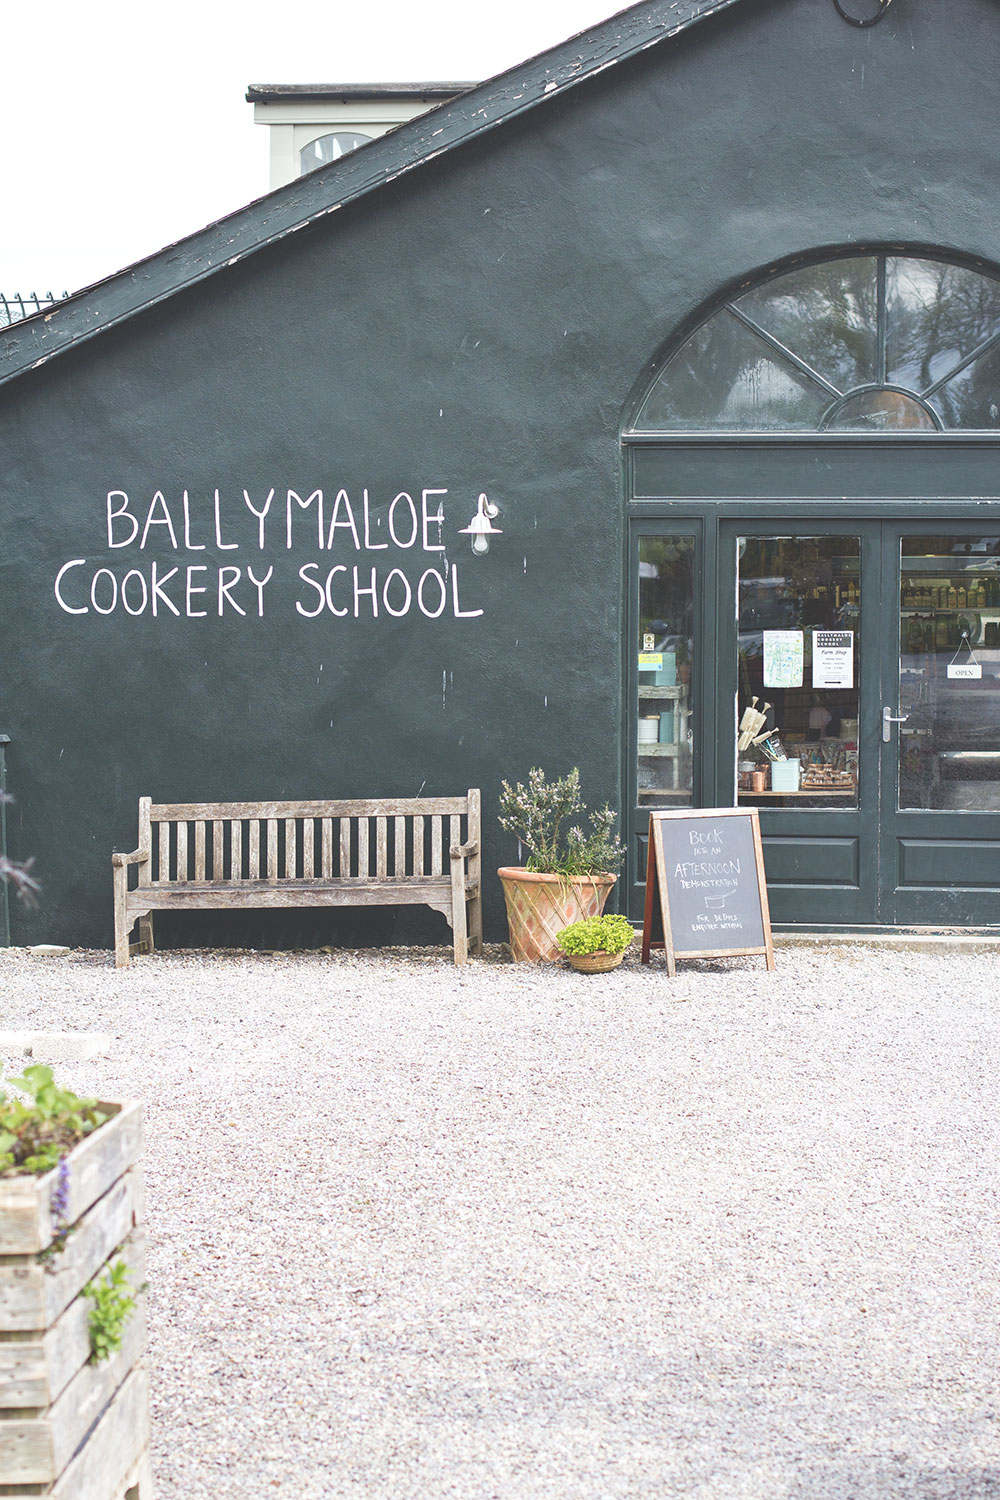 #foodblogbilanz2017 Ballymaloe Cookery School